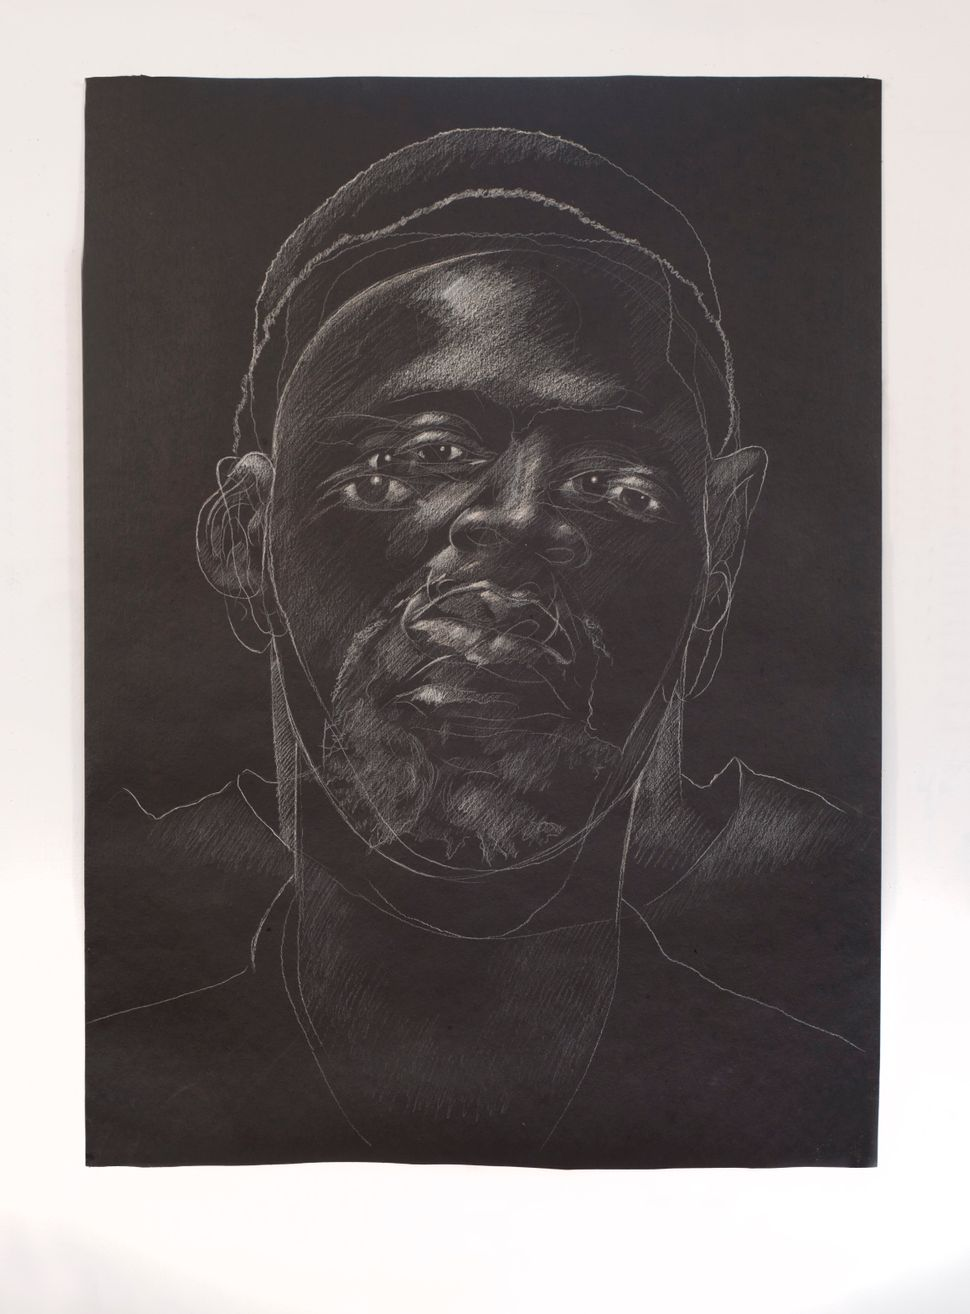 The Jerome Project (Asphalt and Chalk) III, 2014 approximate dimensions 51 x 36 inches ©Titus Kaphar. Courtesy of the artist